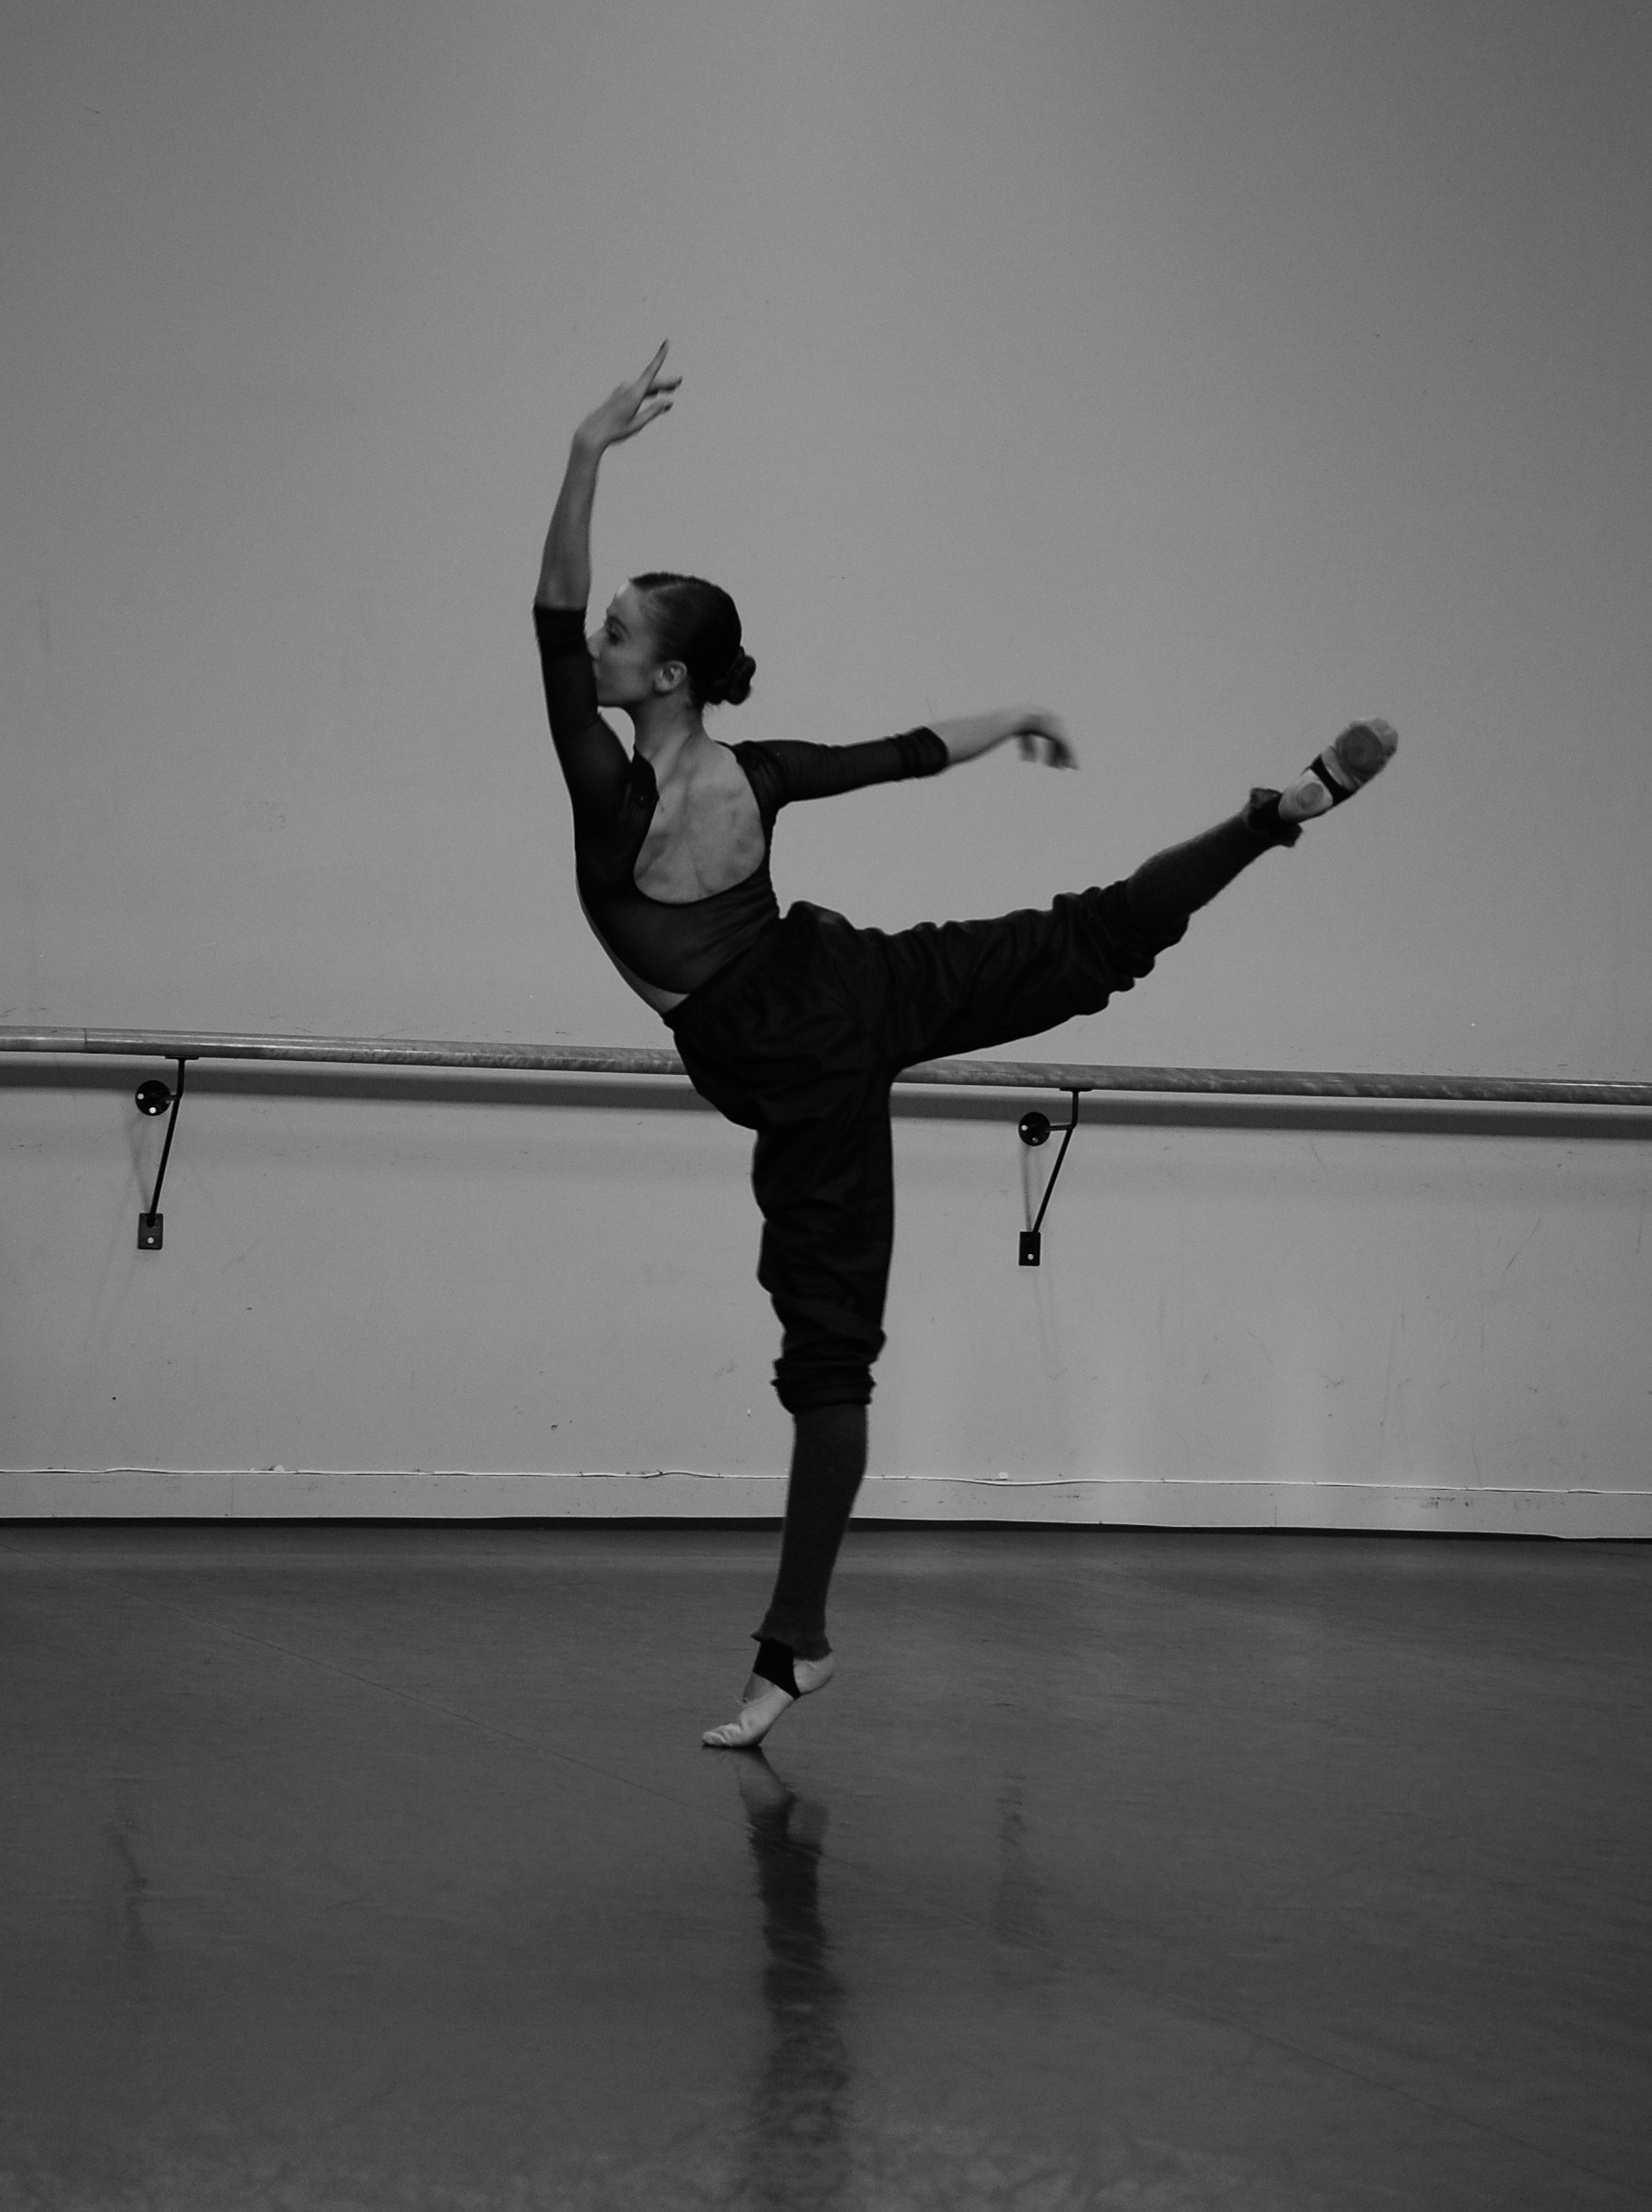 dance appreciation essay Read this essay on dance appreciation come browse our large digital warehouse of free sample essays get the knowledge you need in order to pass your classes and more only at termpaperwarehousecom.